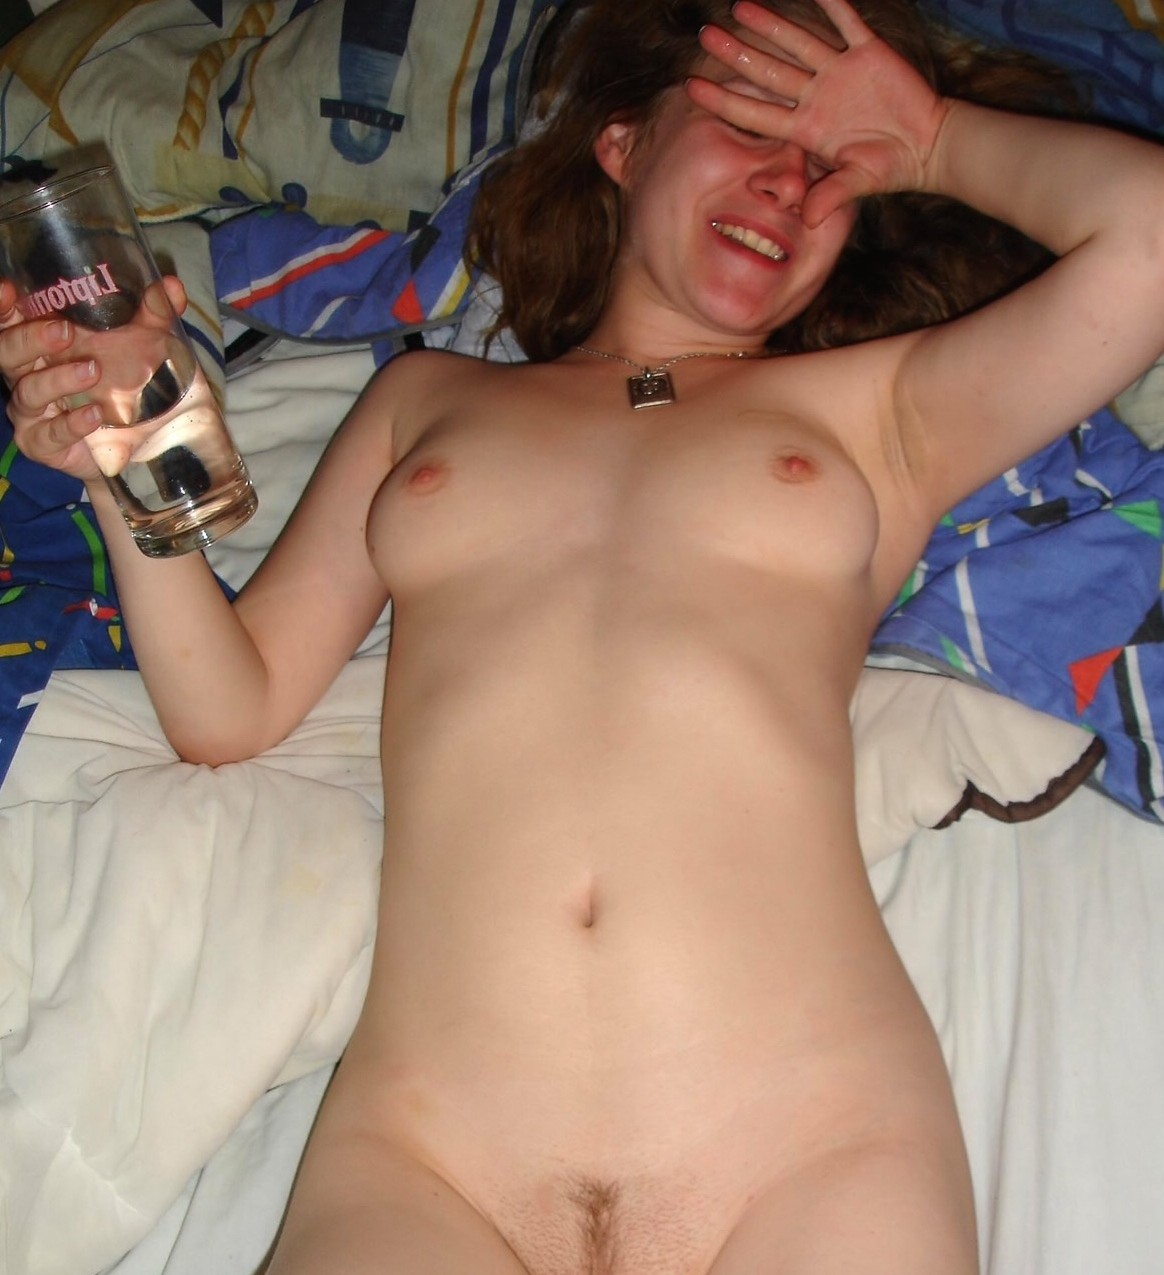 Teen pussy drunk, girl queefing videos